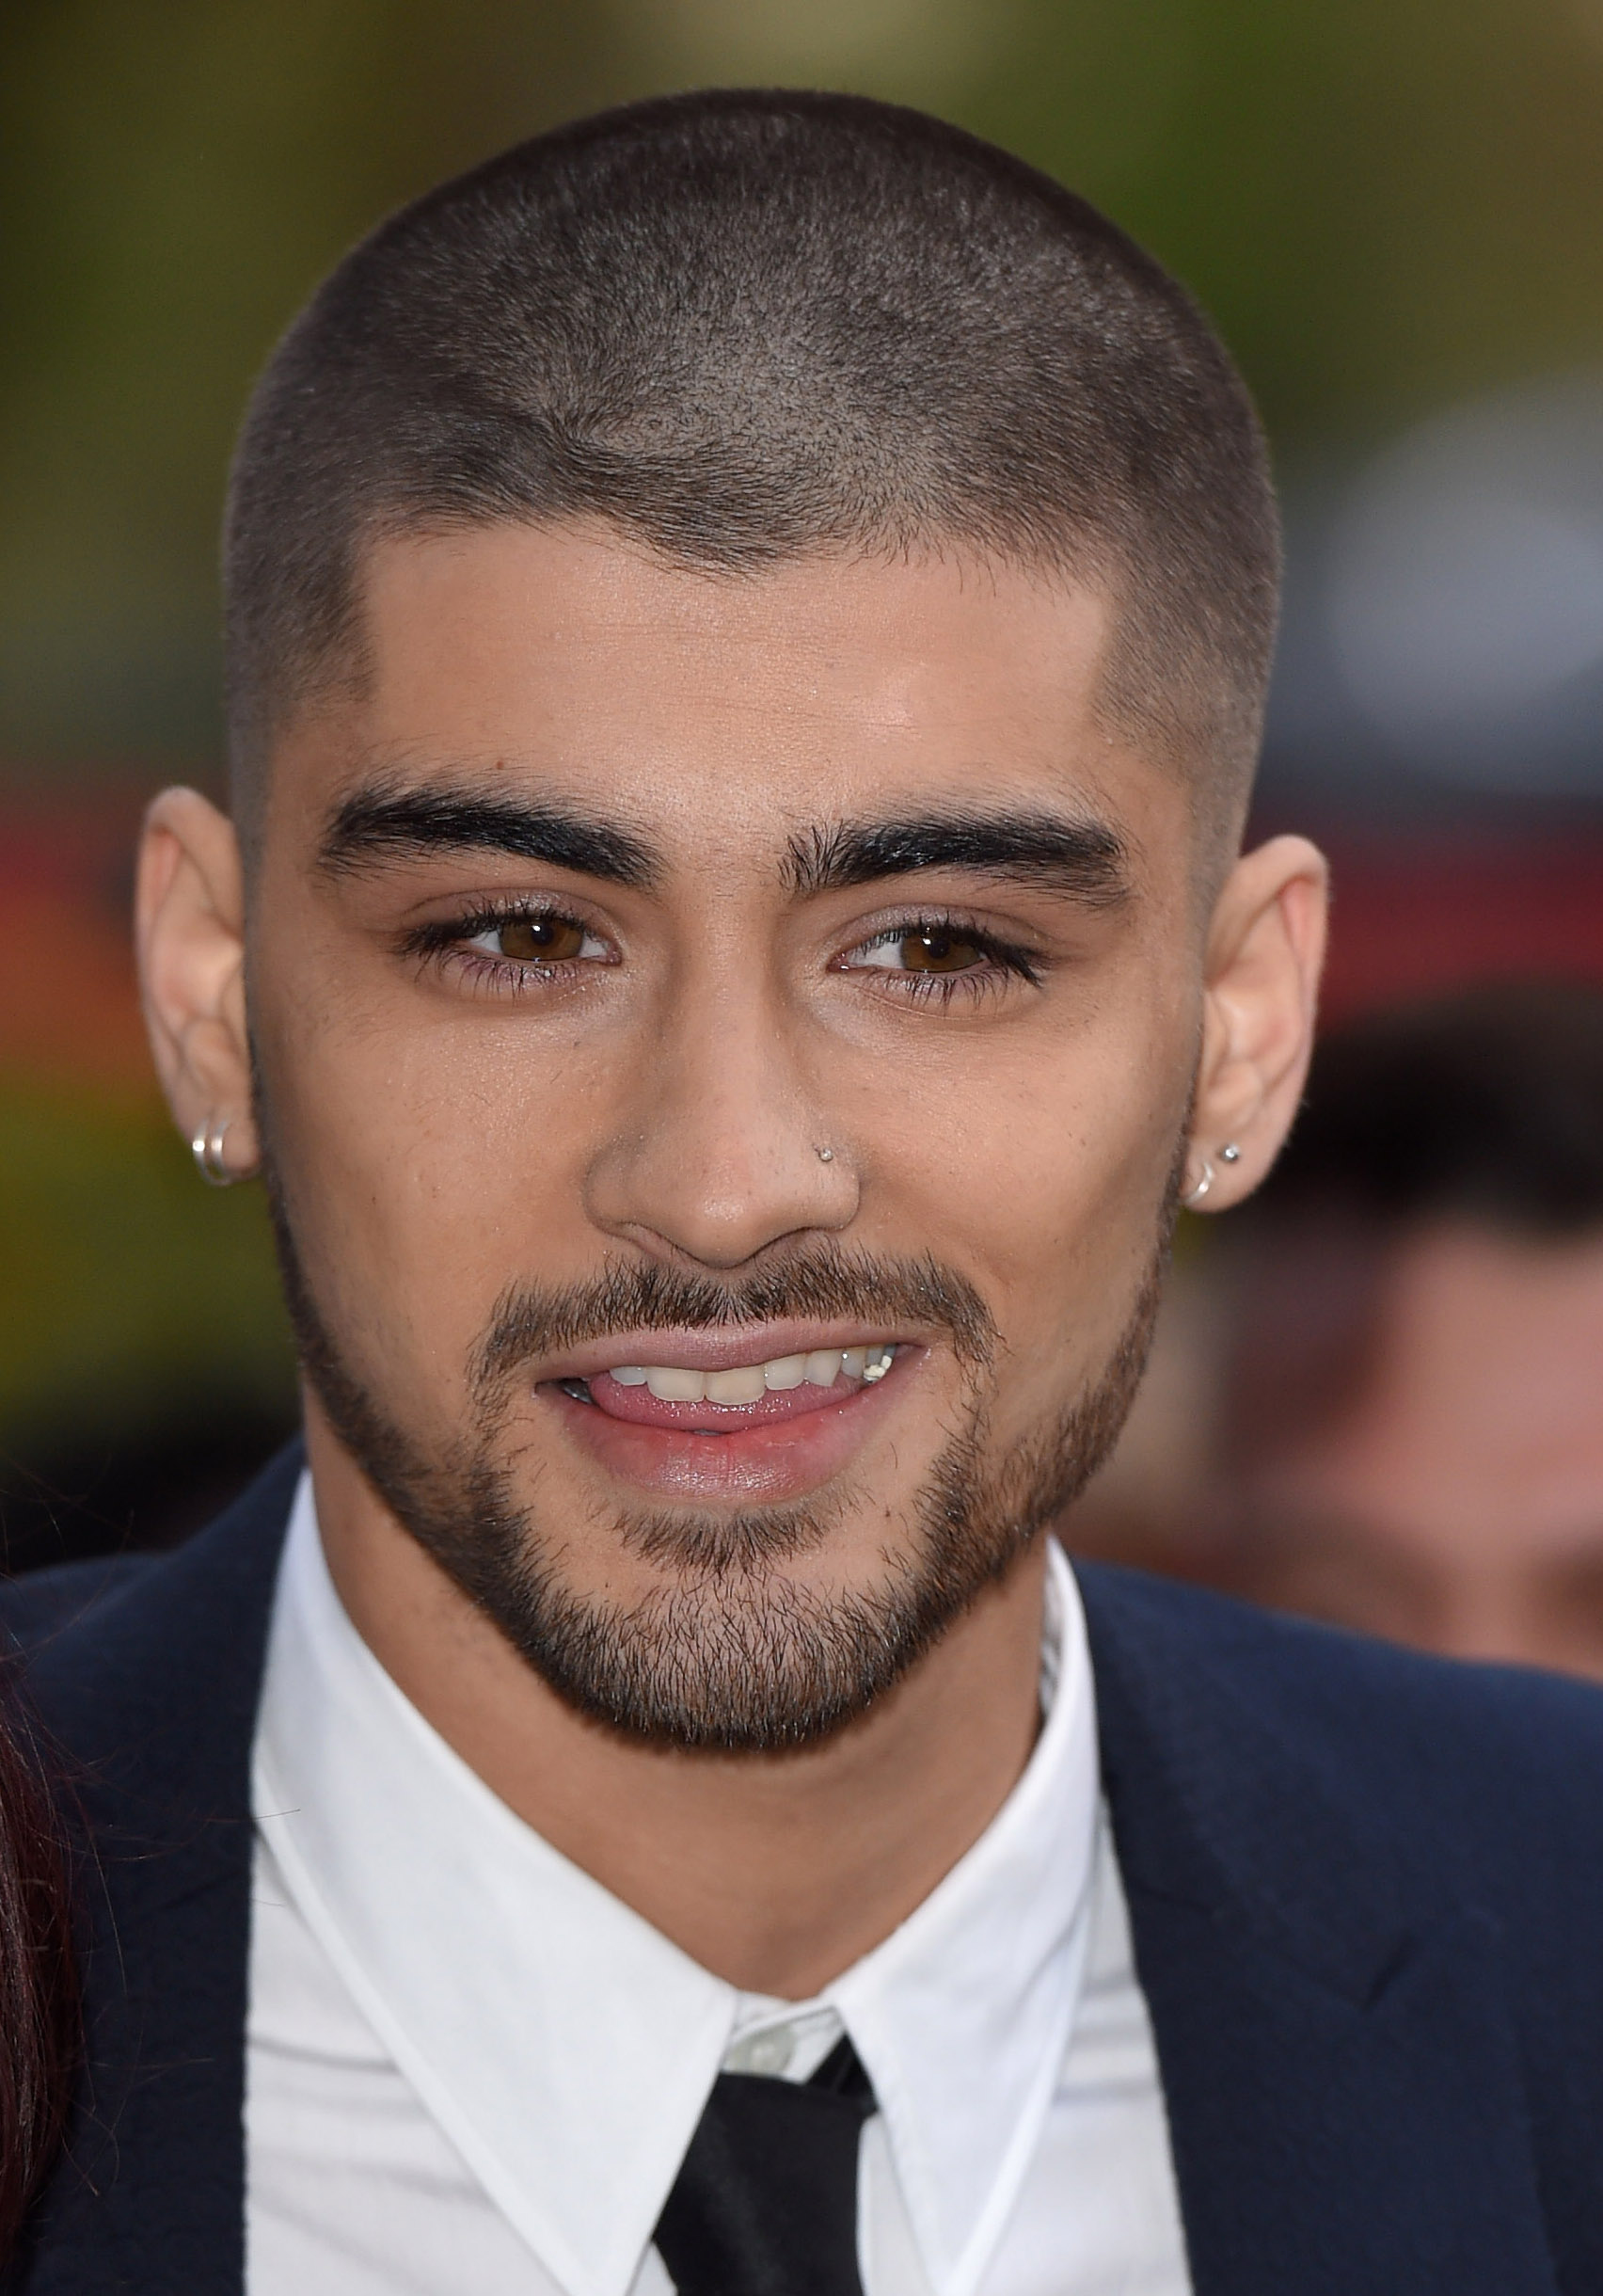 Zayn Malik Removed 1d From His Twitter Handle Time